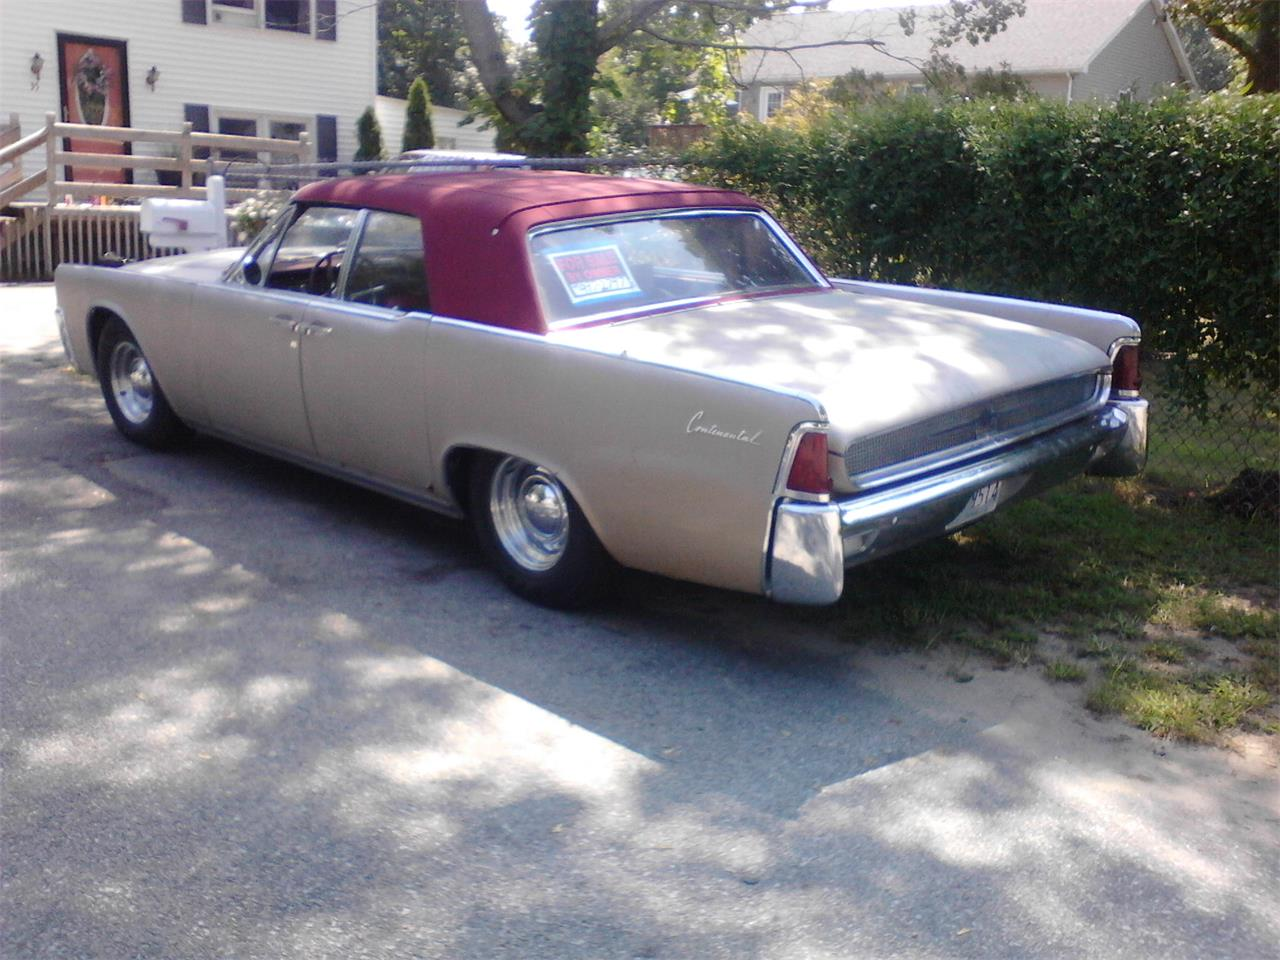 Large Picture of '61 Continental located in Warwick Rhode Island - $20,000.00 Offered by a Private Seller - KY2A